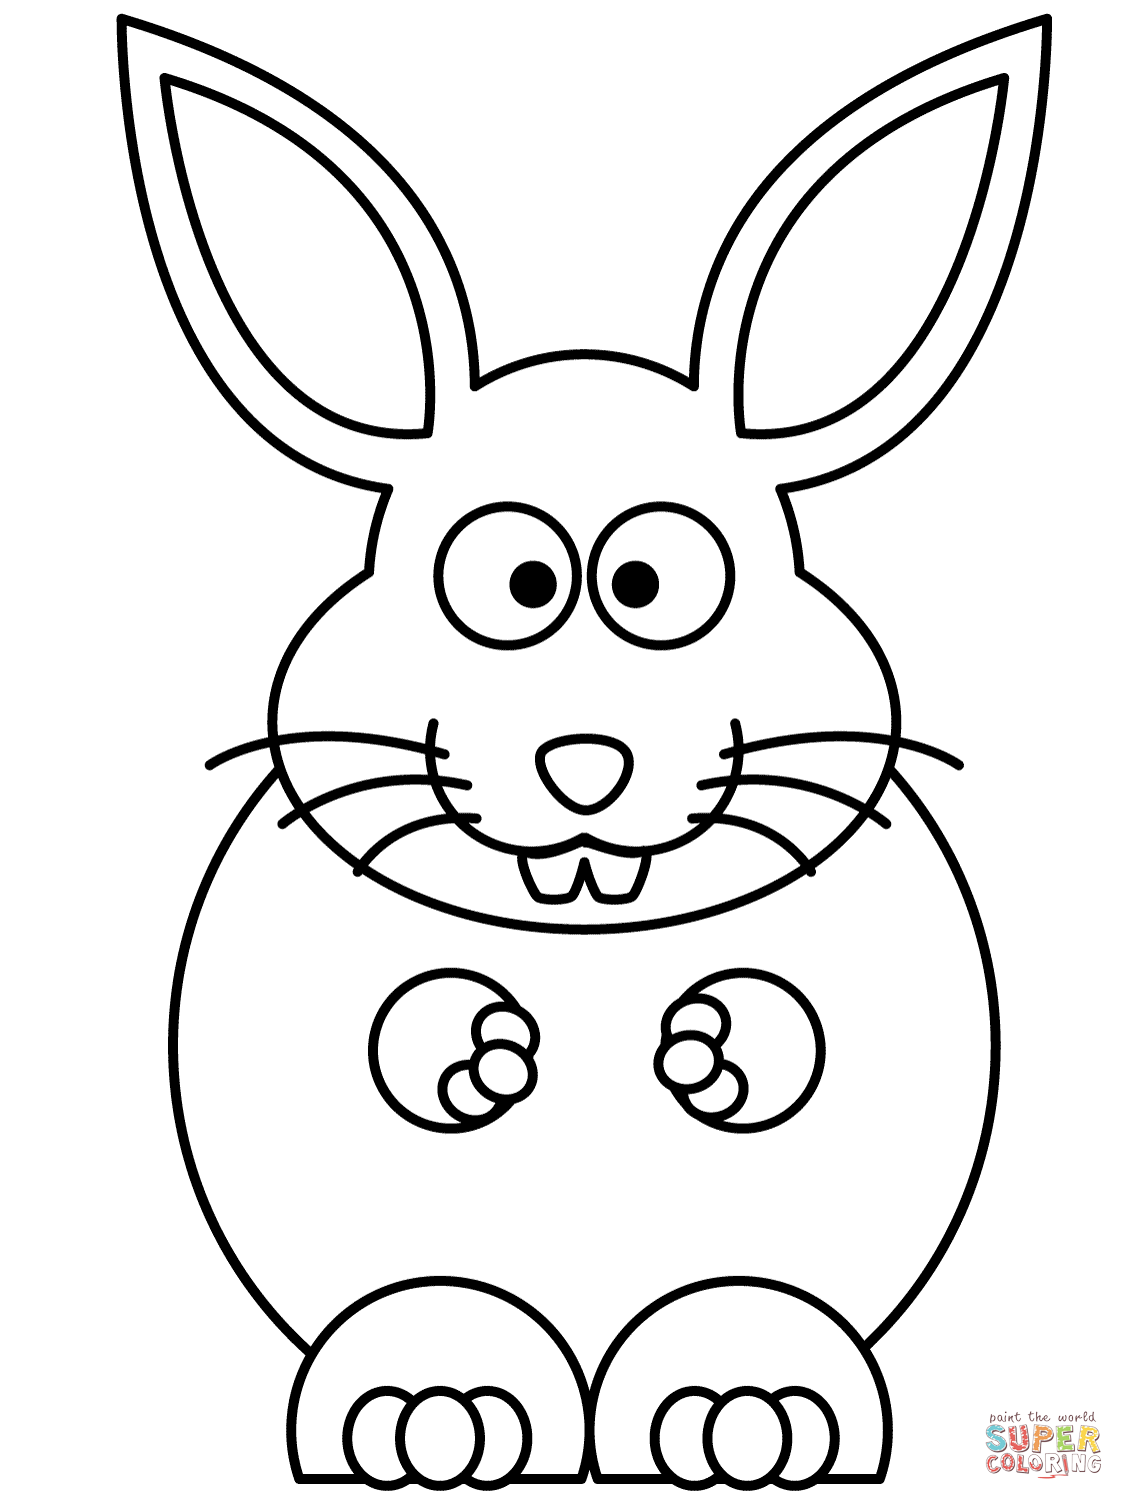 print bunny coloring pages rabbit to download rabbit kids coloring pages bunny coloring print pages